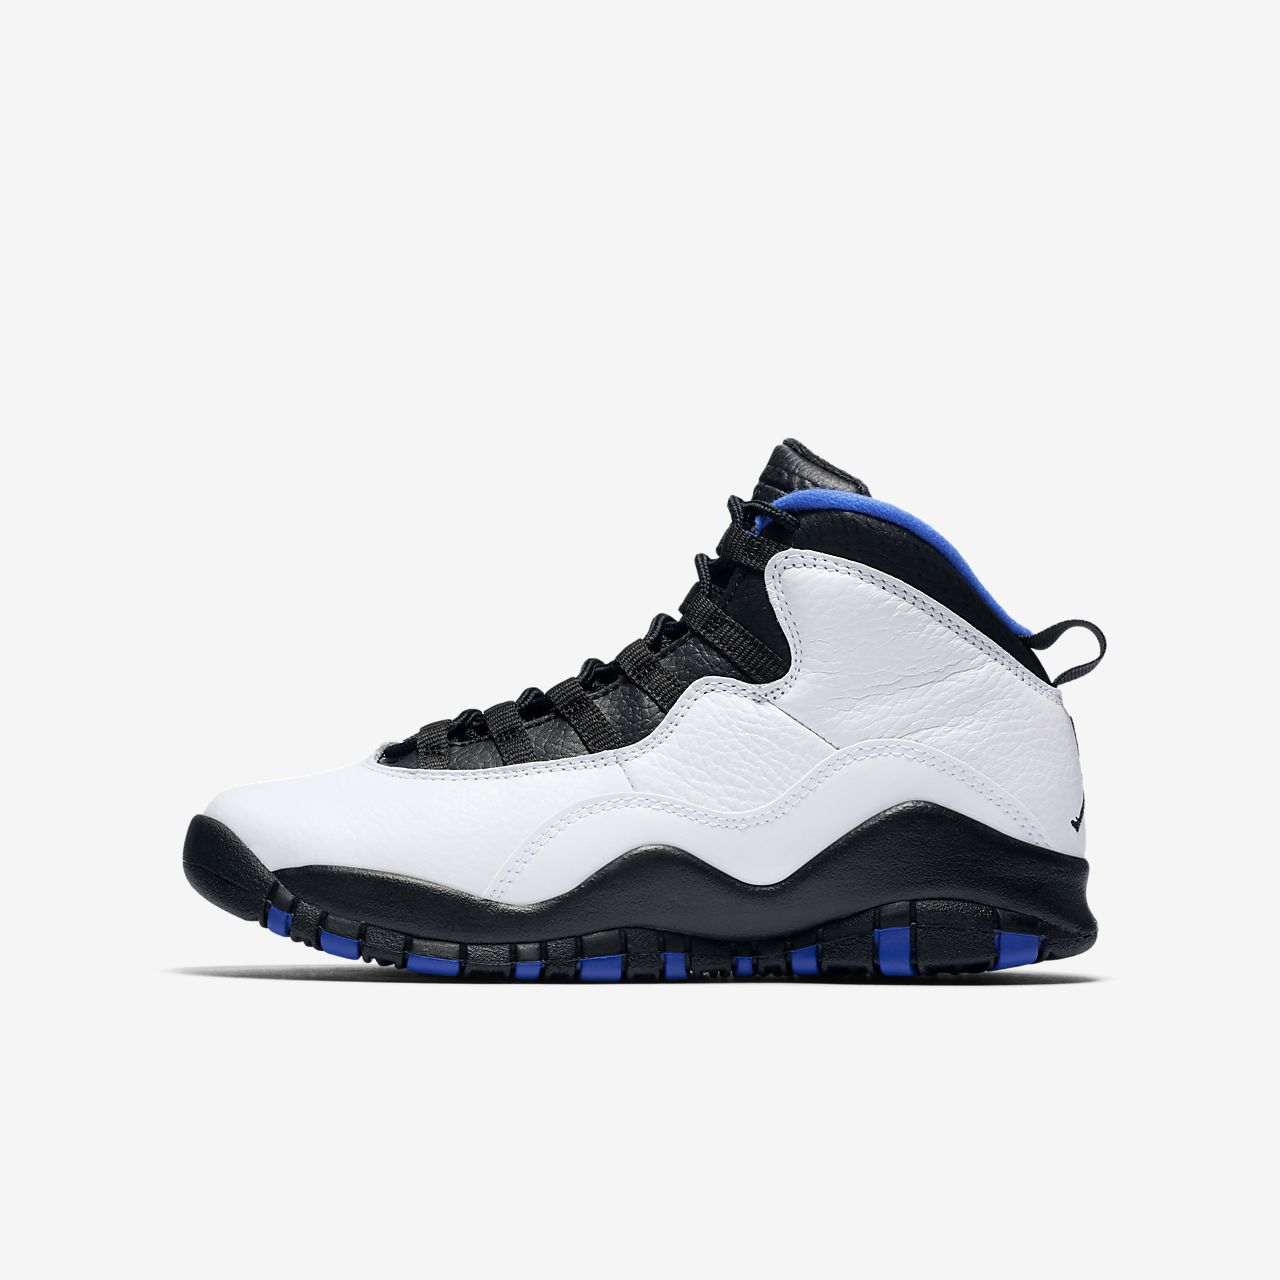 8568370ecb253b Air Jordan Retro 10 (3.5y-7y) Big Kids  Shoe. Nike.com